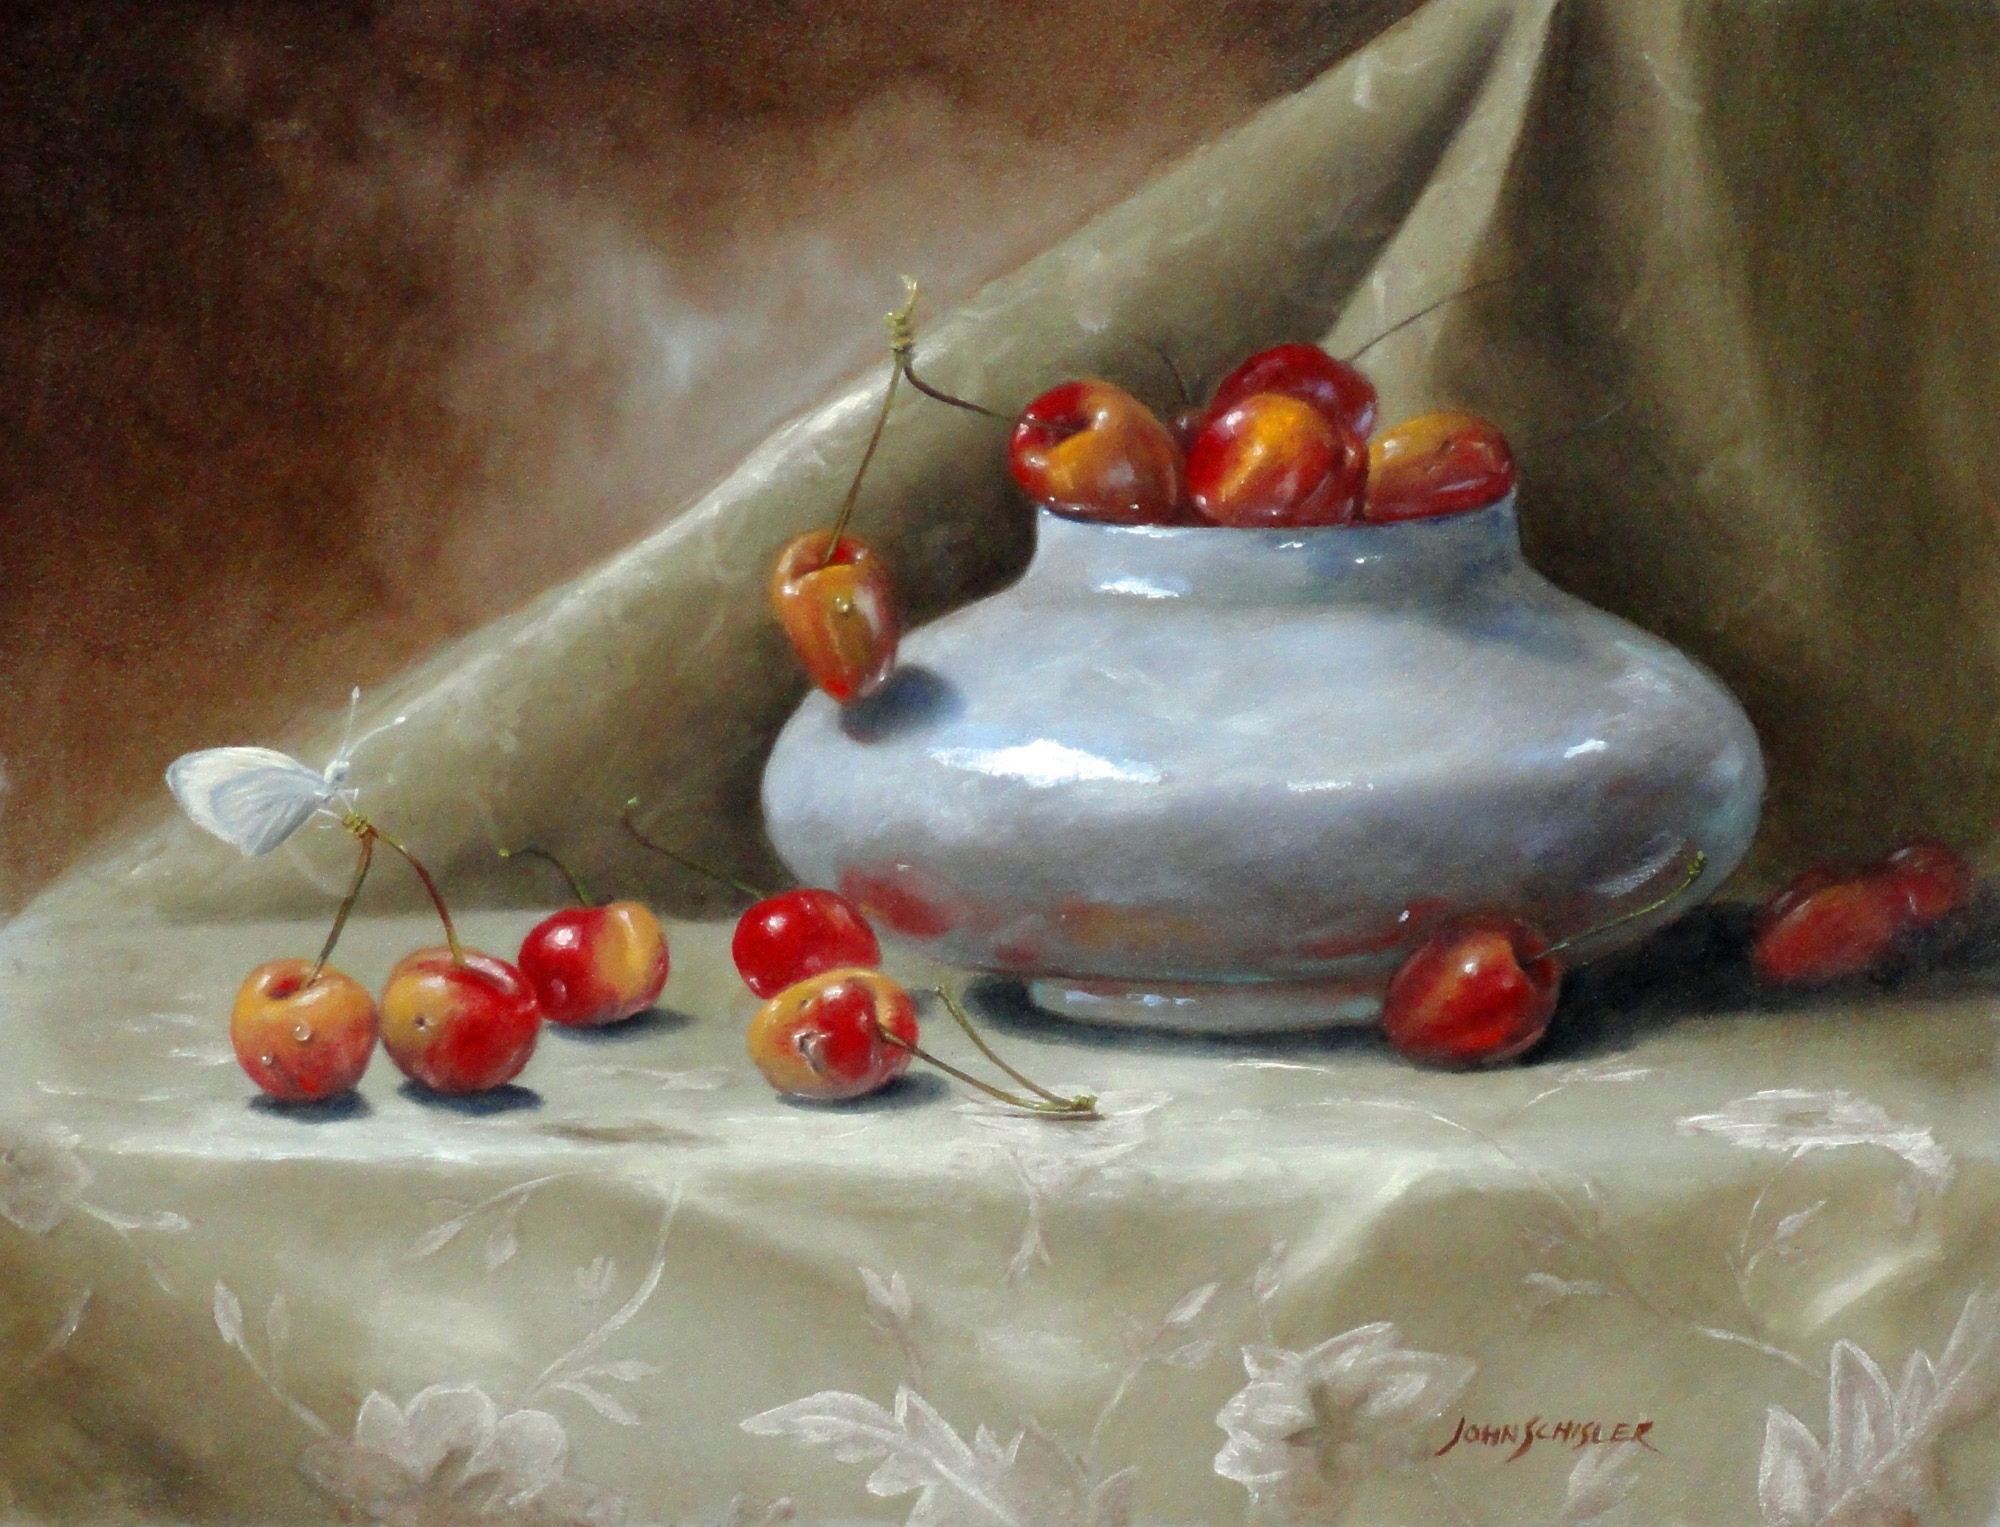 cherries and bowl2.jpg